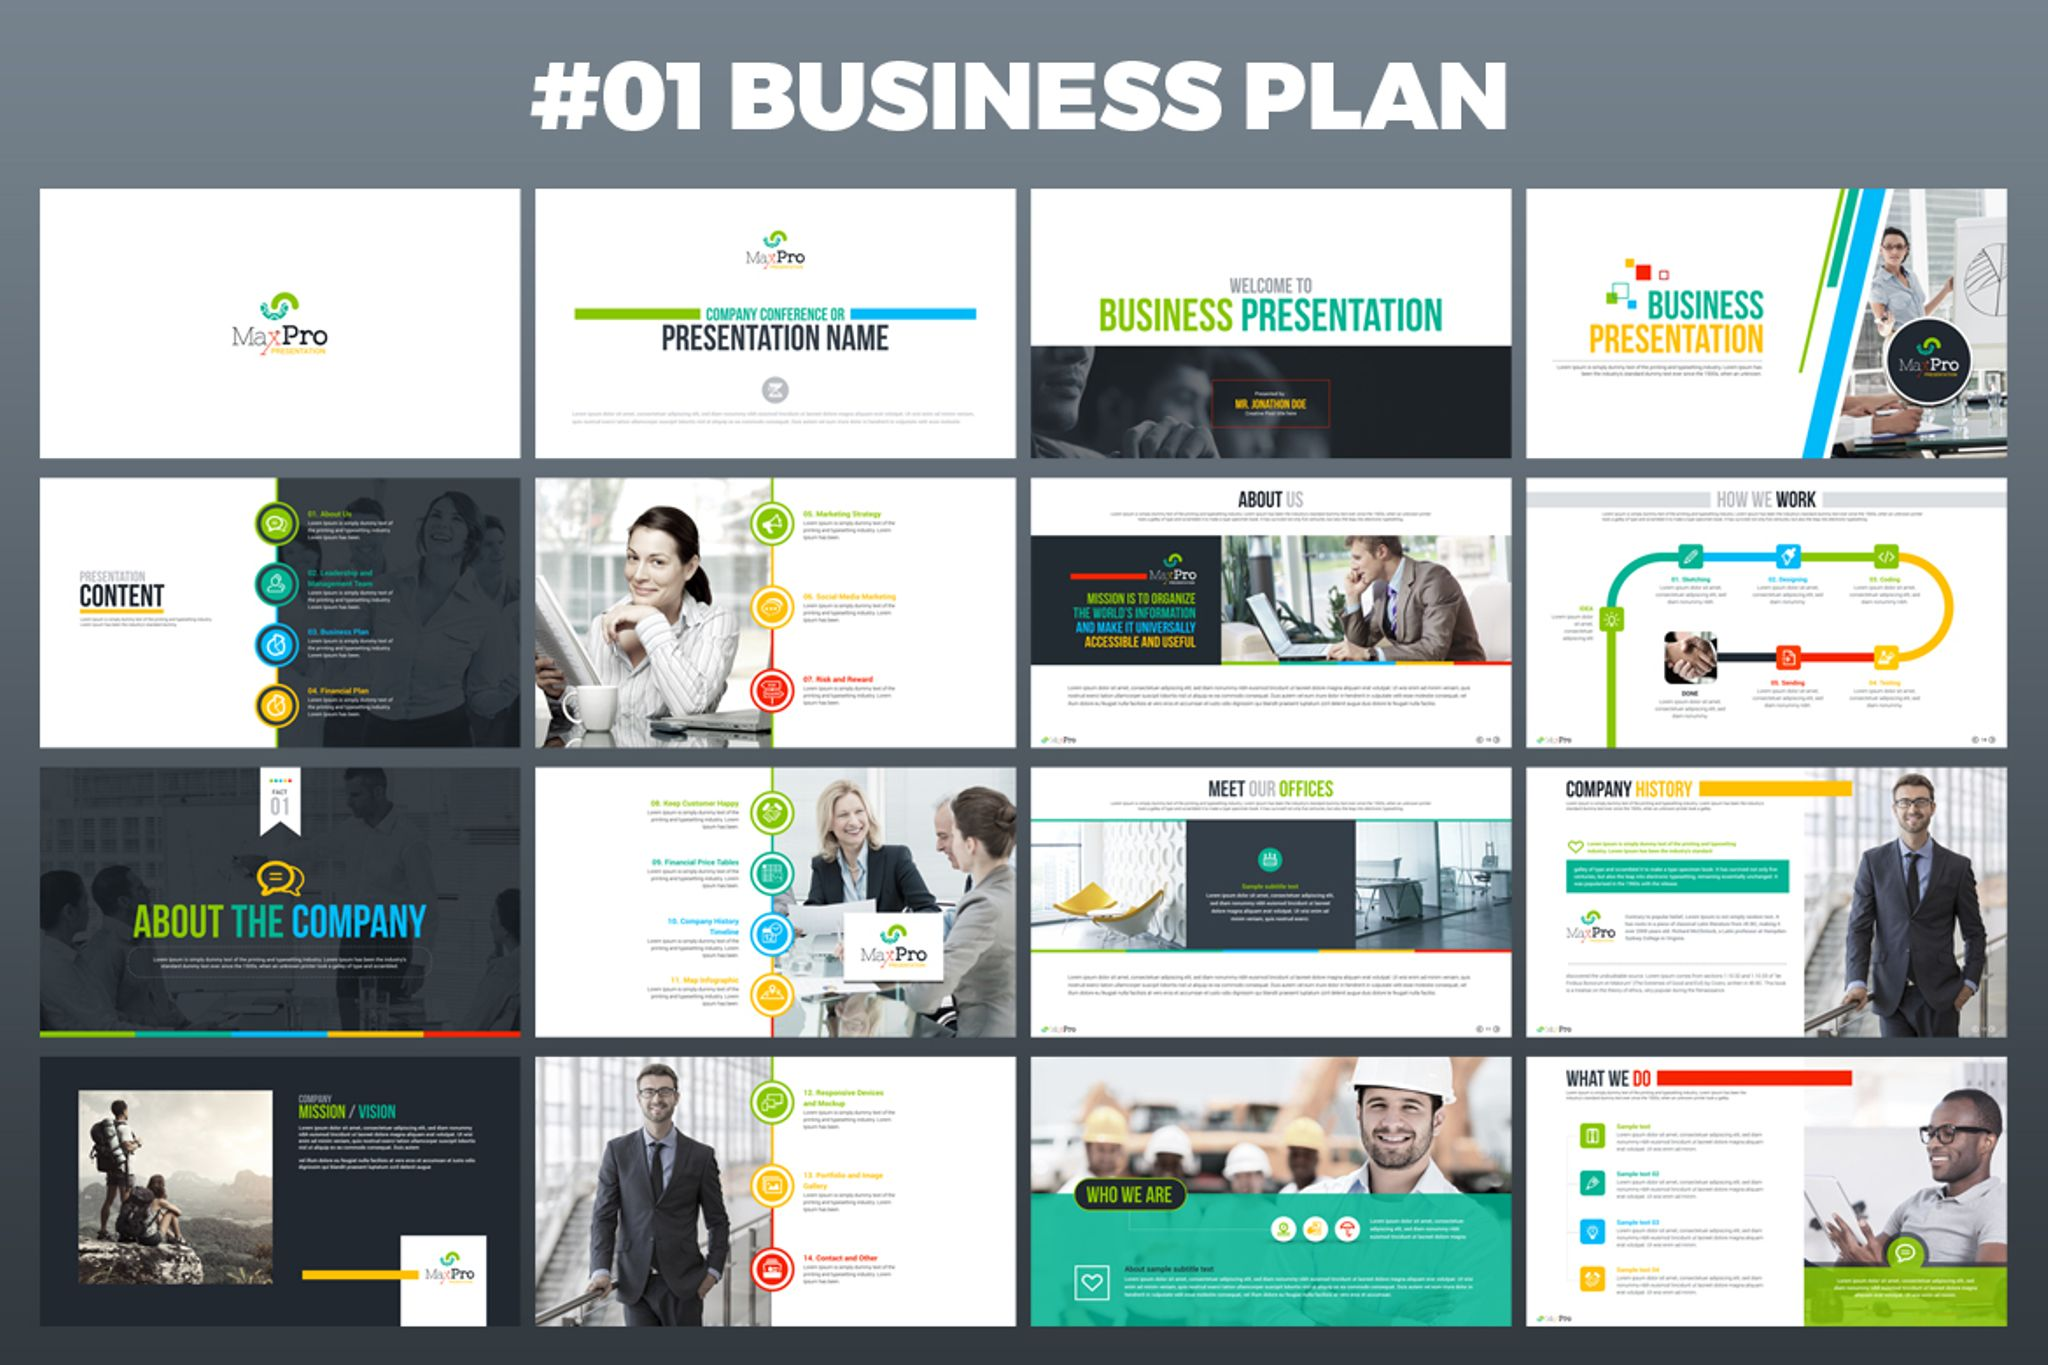 Maxpro business plan powerpoint template 66751 maxpro business plan powerpoint template big screenshot accmission